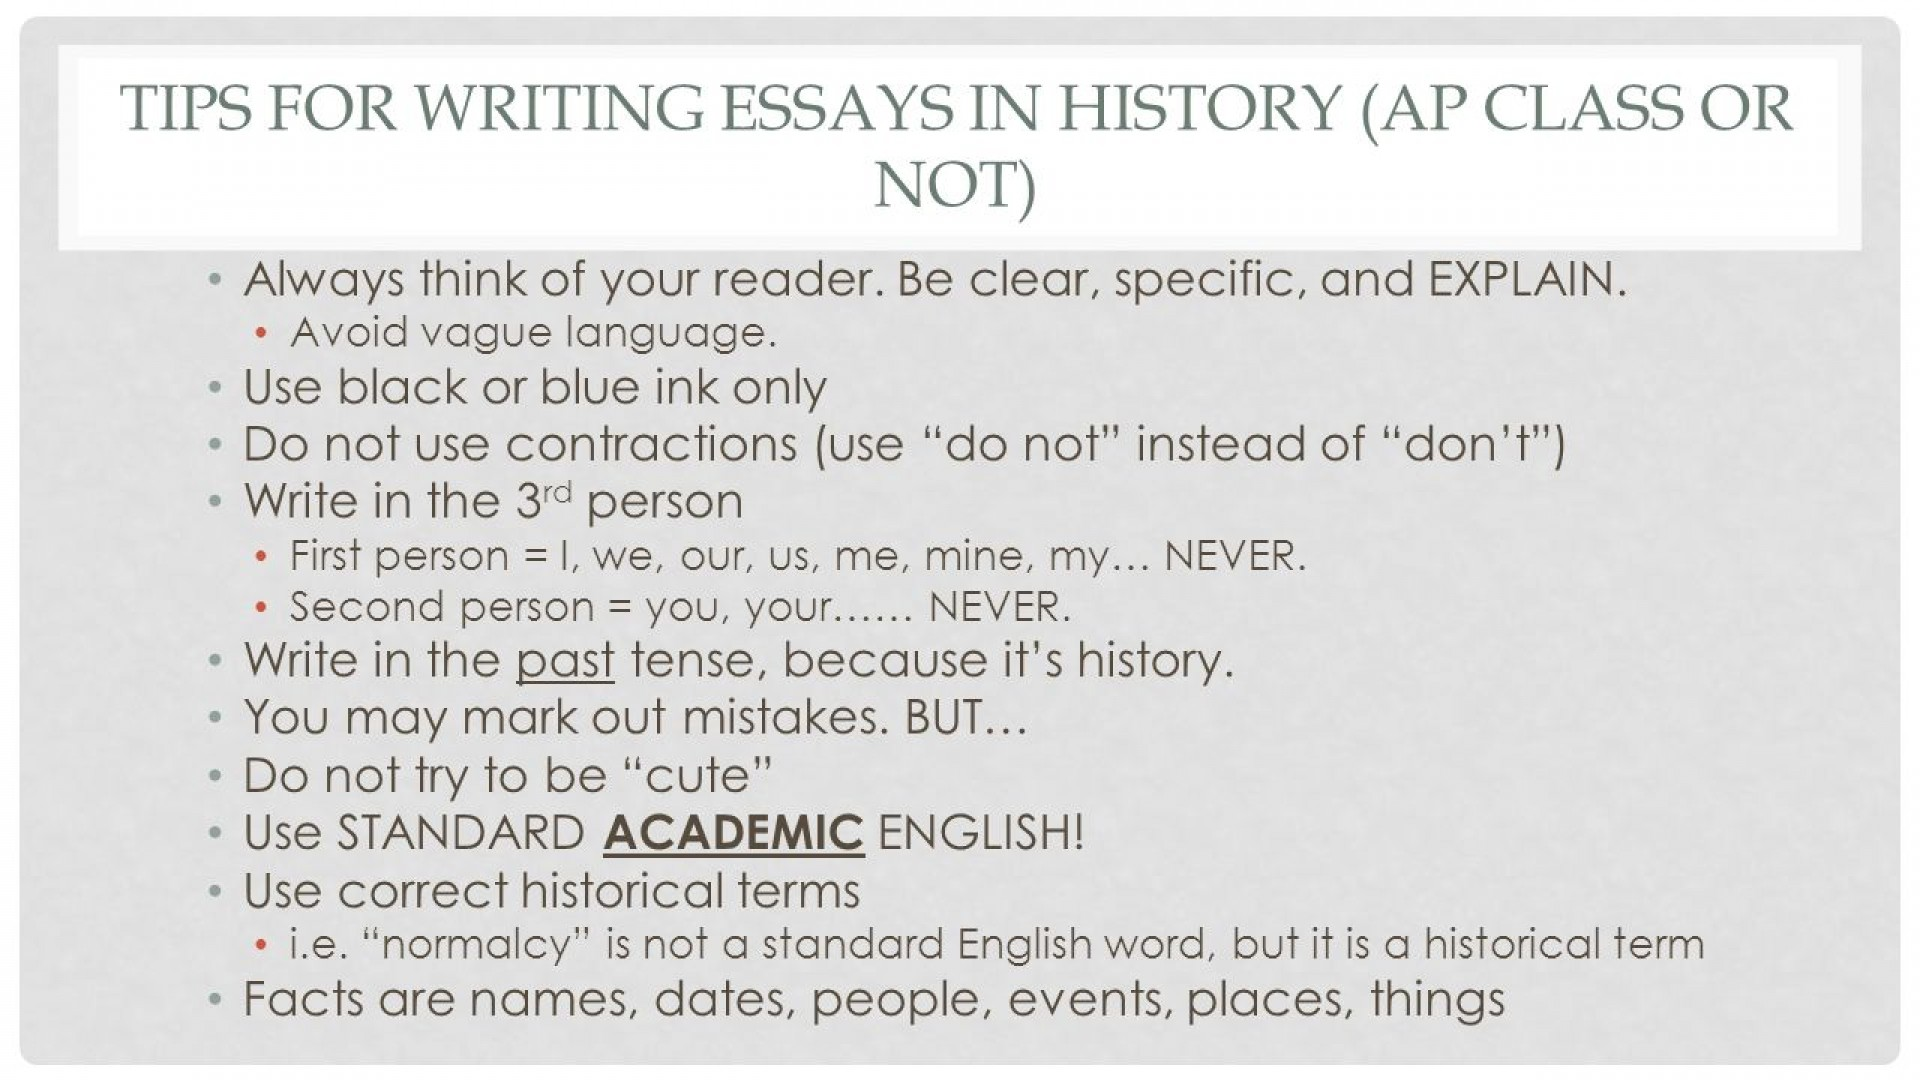 009 How To Write The Long Essay Question Ppt Downl In One Night For Ap Us History Proposal World With Little Information Quickly Apush Fast Is An Wondrous What A Short Does Answer Have Be Should 1920